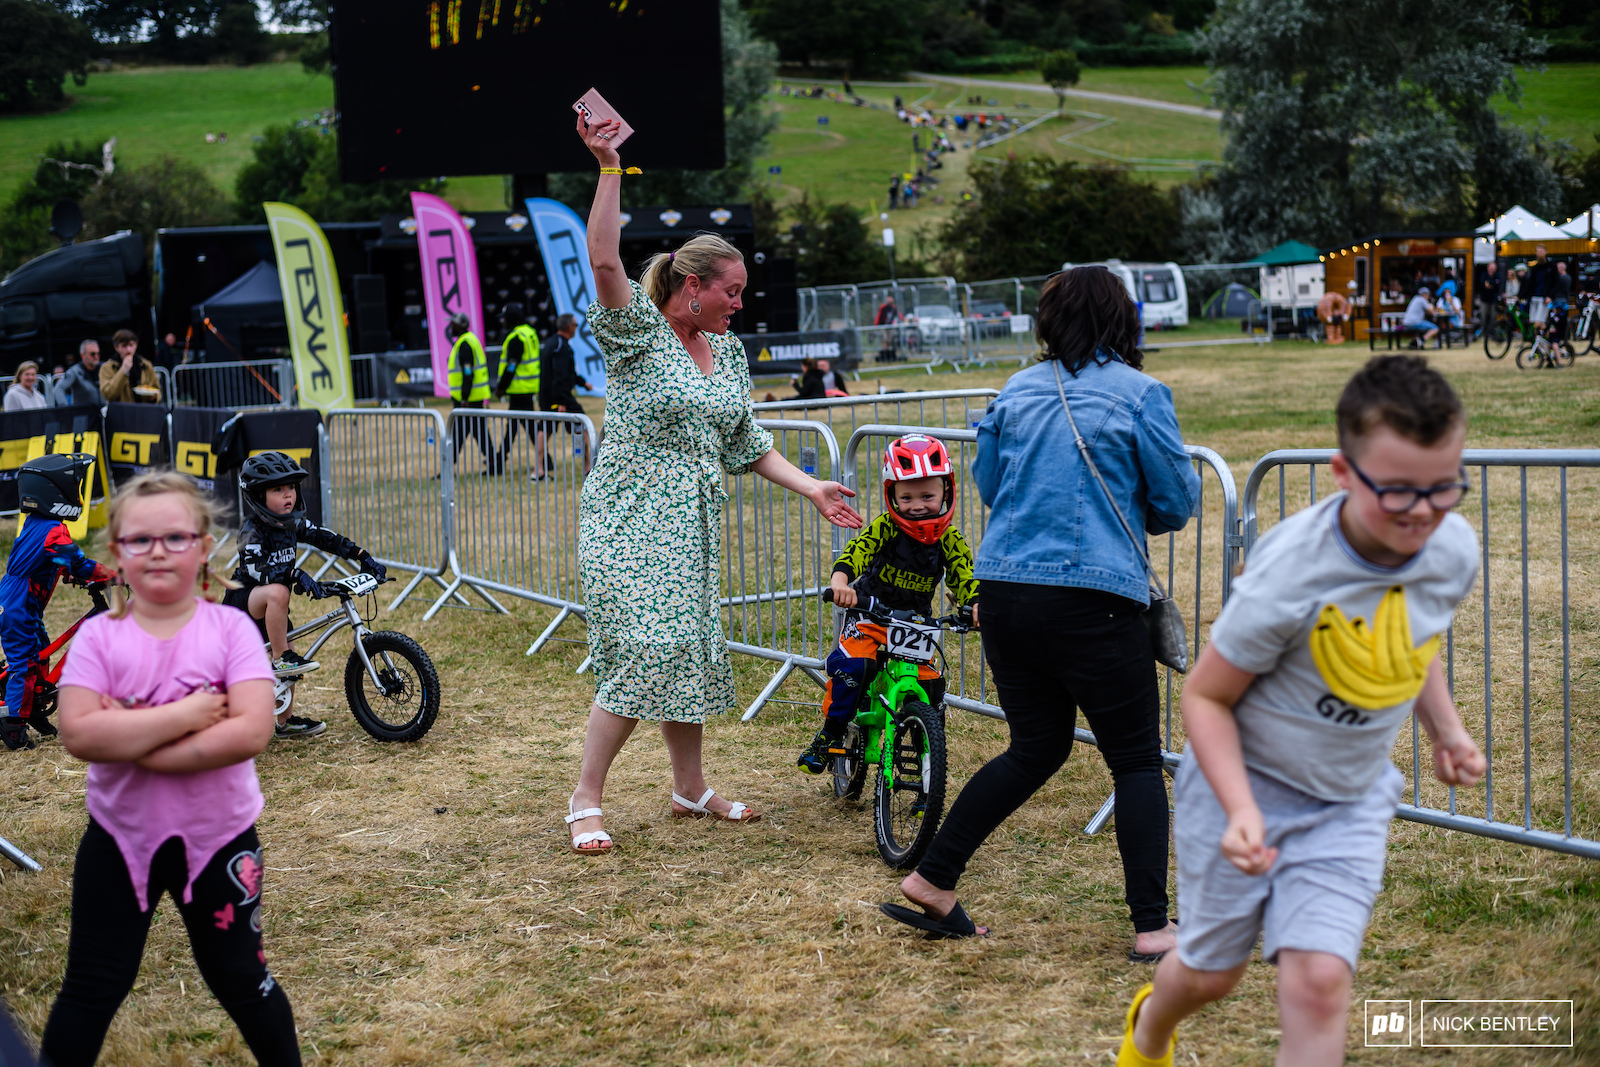 I m not sure who was more excited Mum or the rider